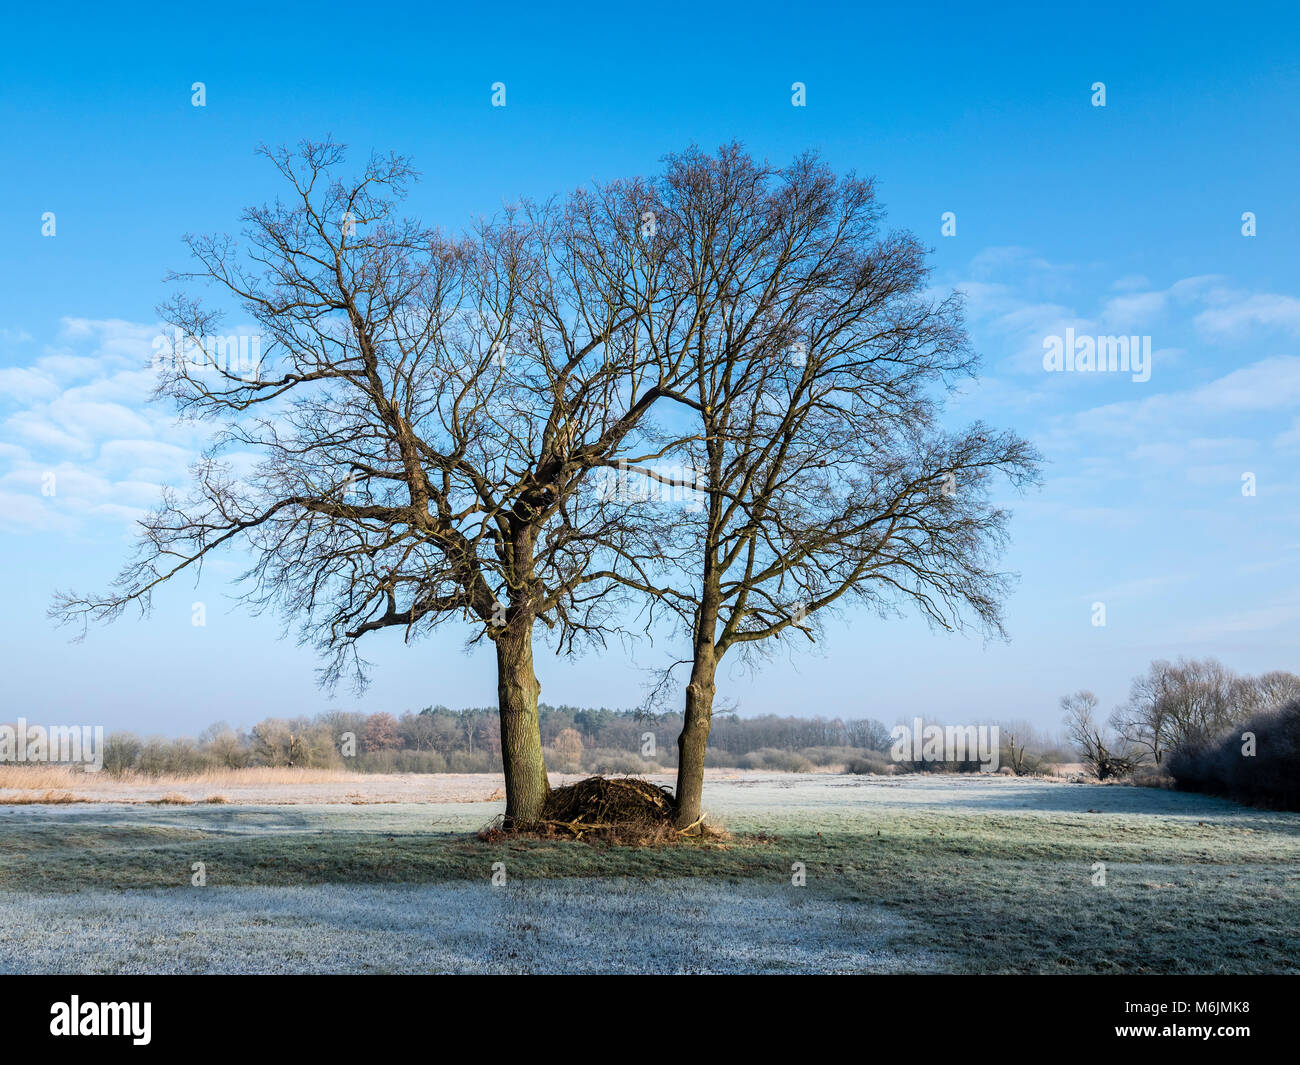 Trees on a frozen meadow at the Aller cycle path, river Aller ,  between Celle and Altencelle, Germany Stock Photo